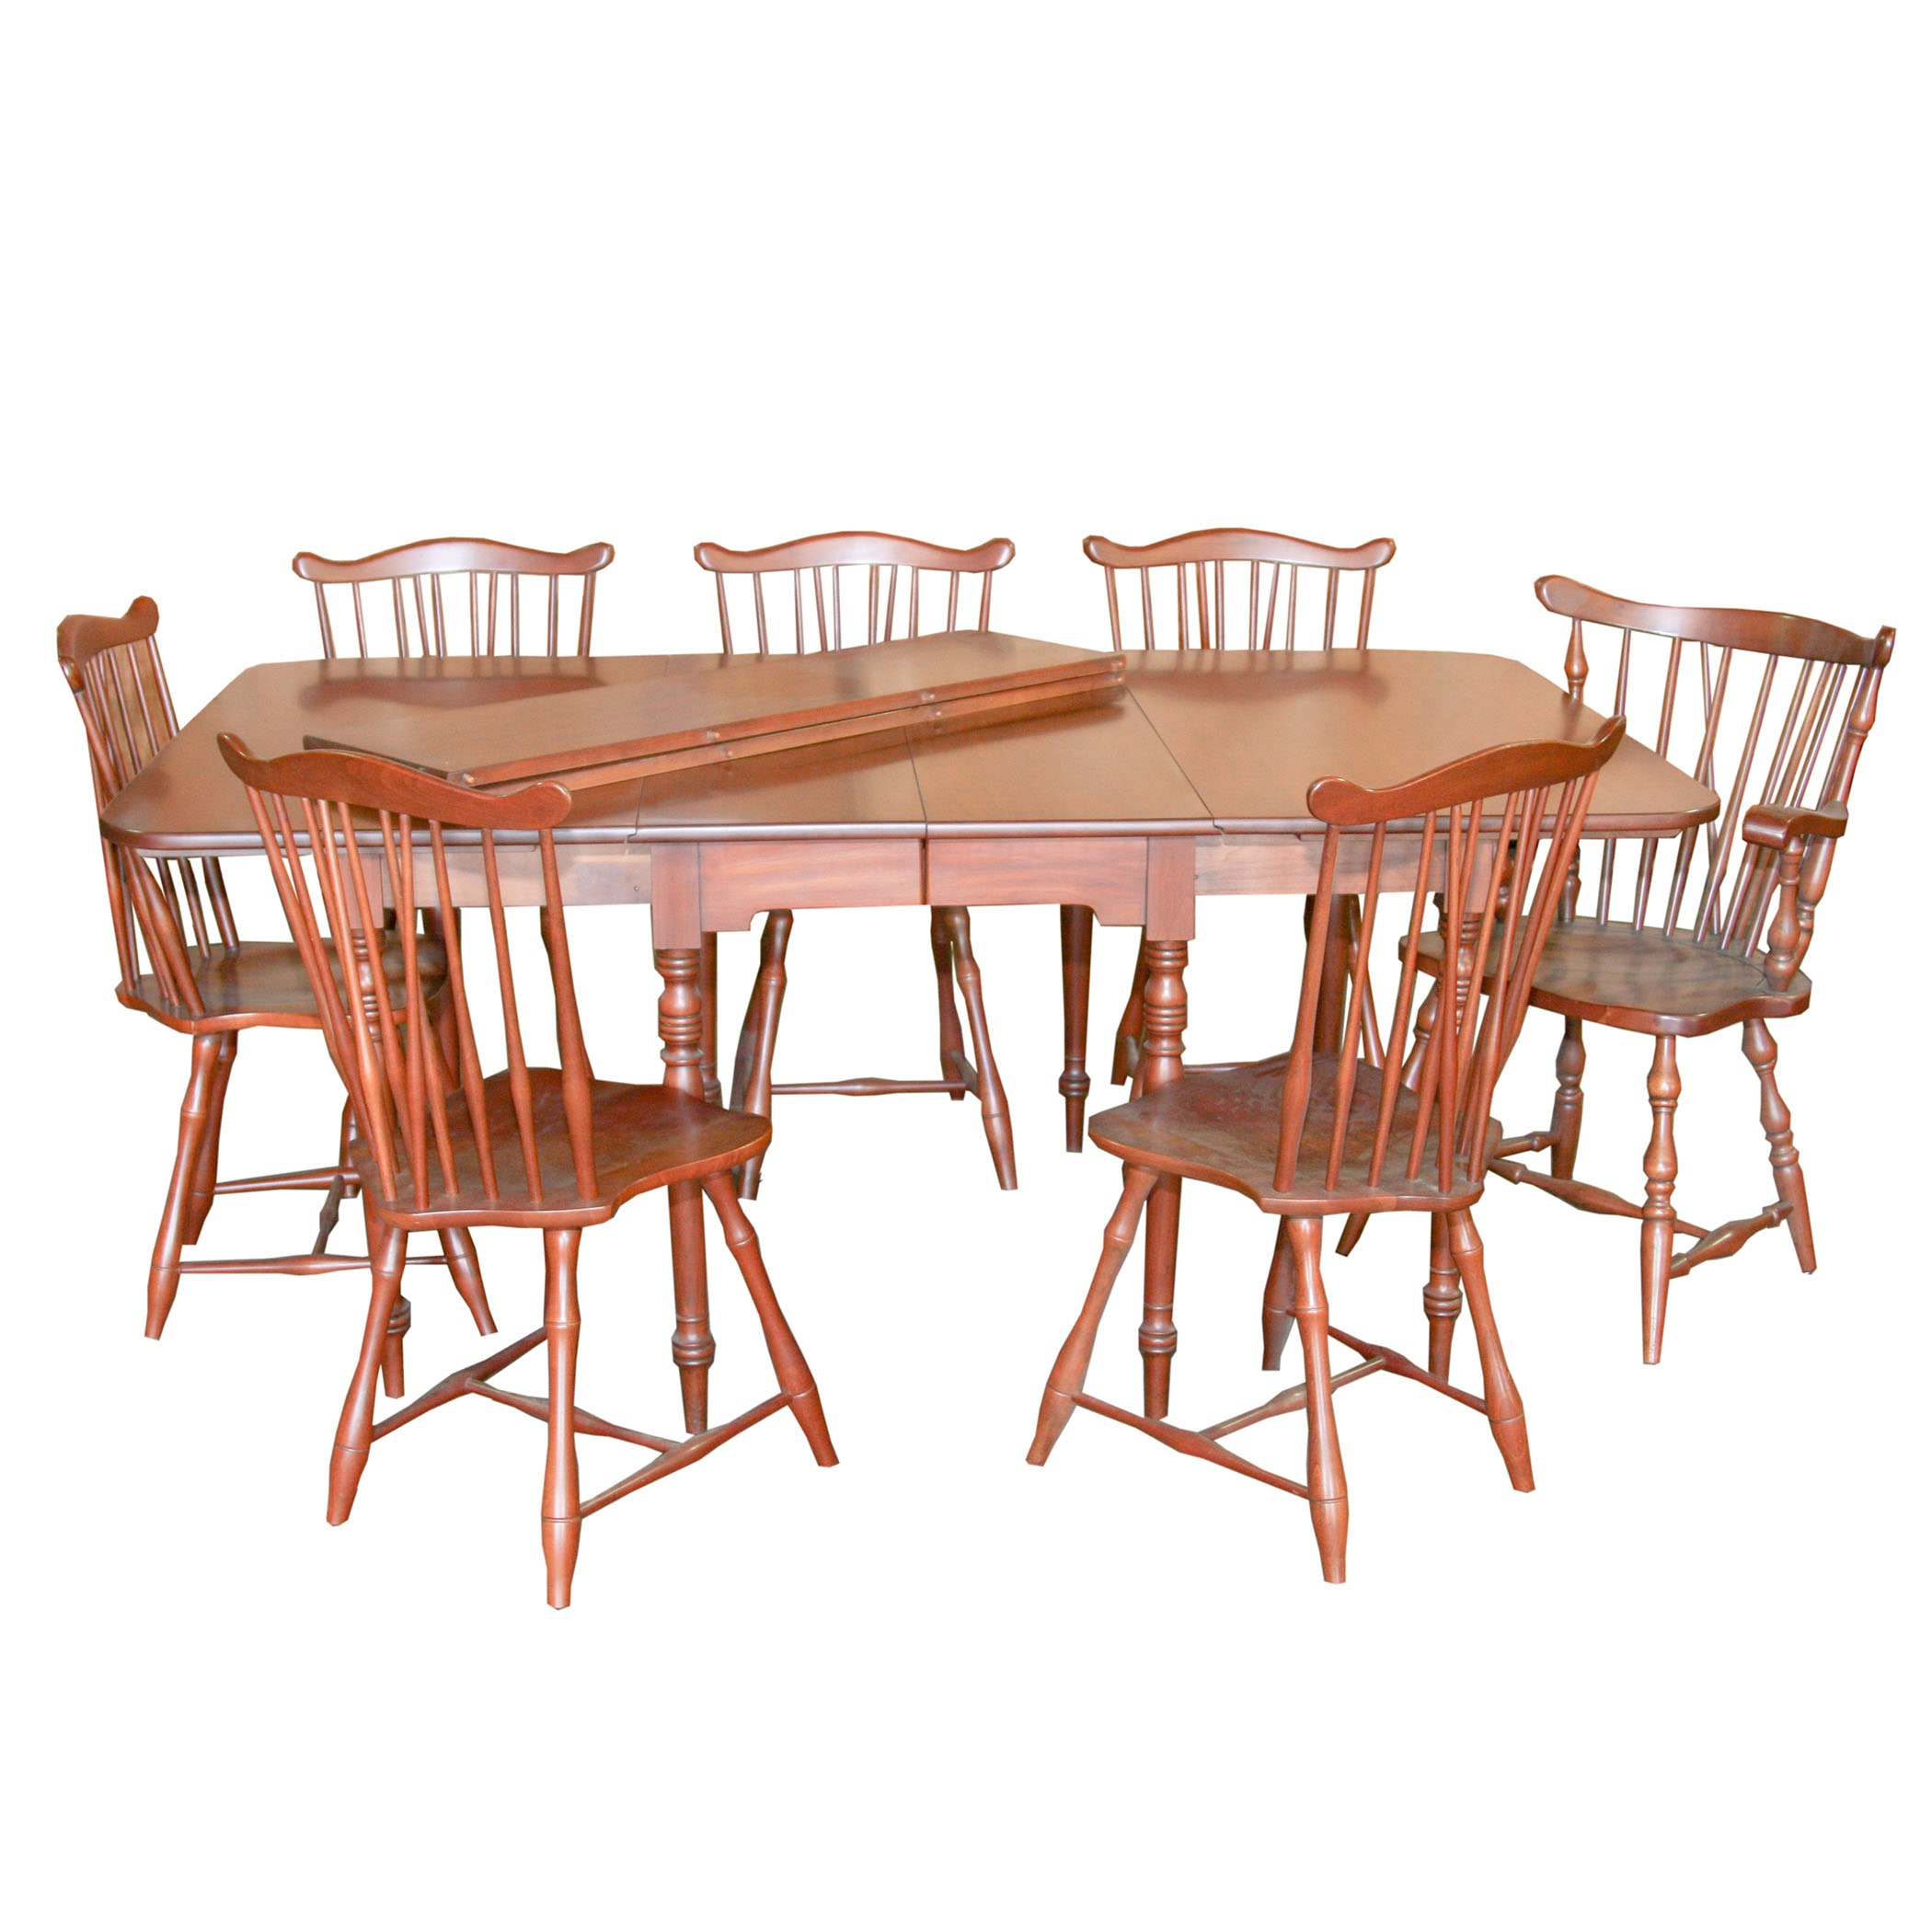 Henkel Harris Expandable Dining Table With Chairs ...